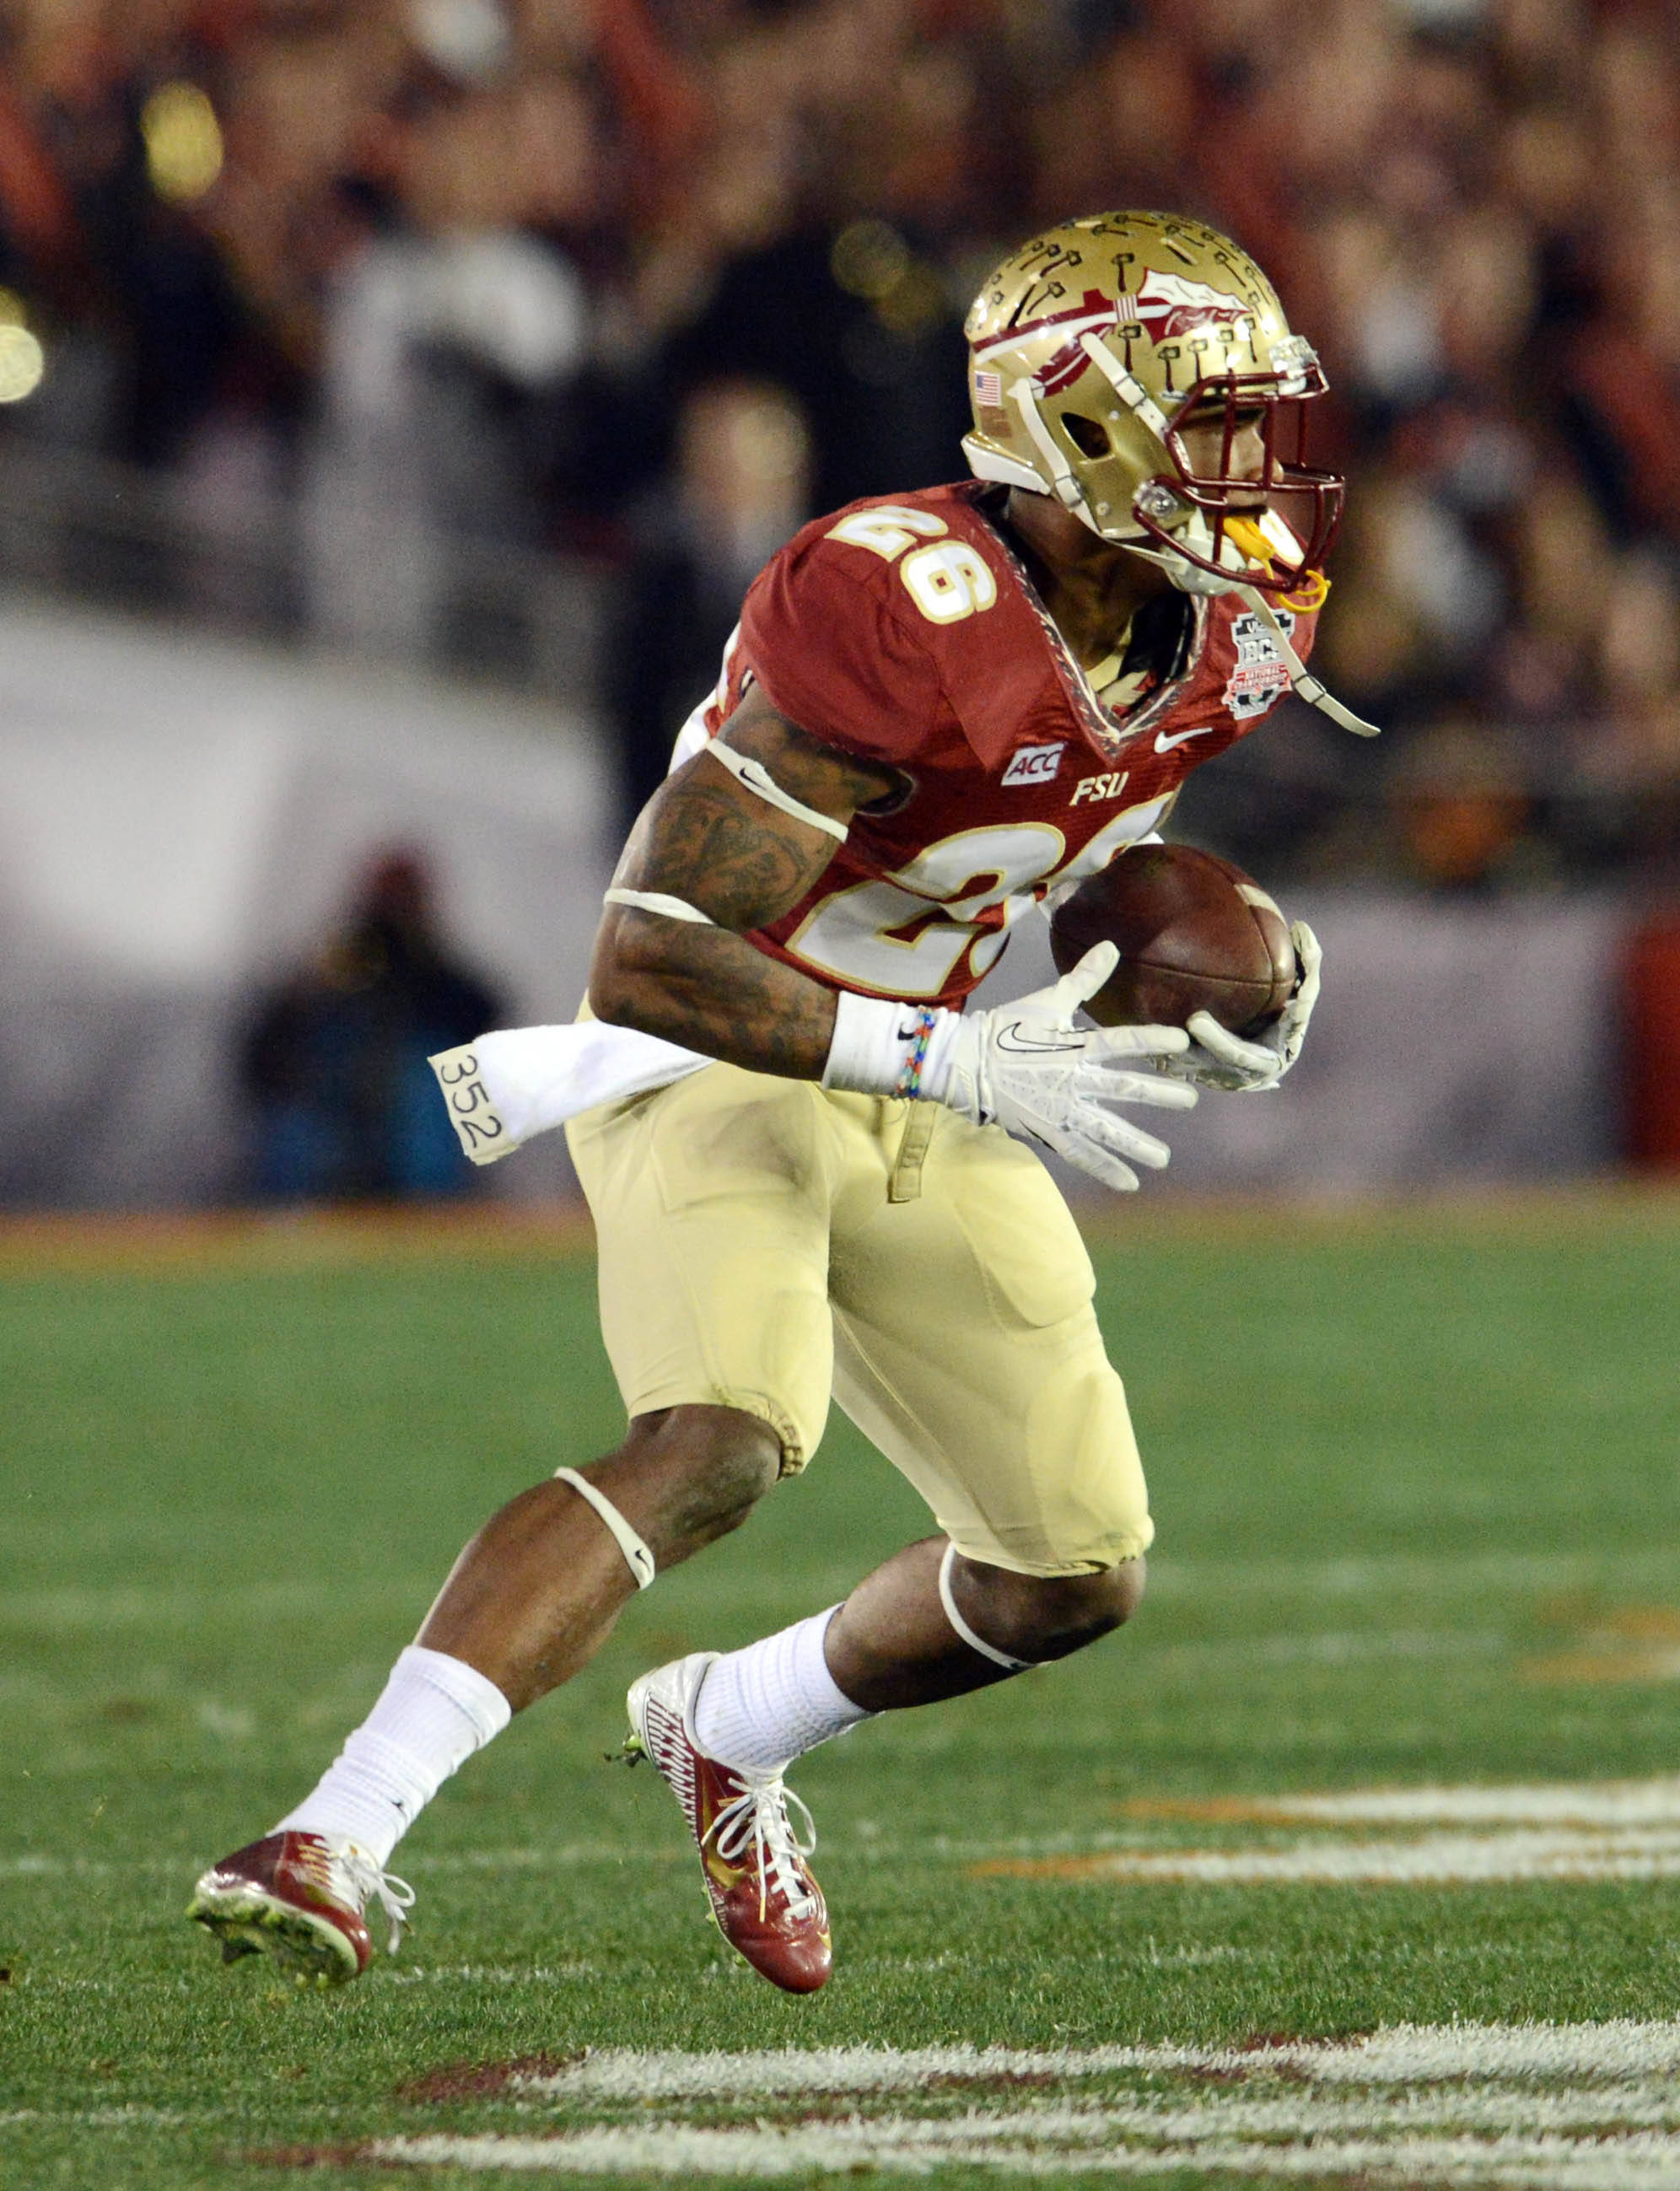 Jan 6, 2014; Pasadena, CA, USA; Florida State Seminoles defensive back P.J. Williams (26) intercepts a pass against the Auburn Tigers during the second half of the 2014 BCS National Championship game at the Rose Bowl.  Mandatory Credit: Jayne Kamin-Oncea-USA TODAY Sports